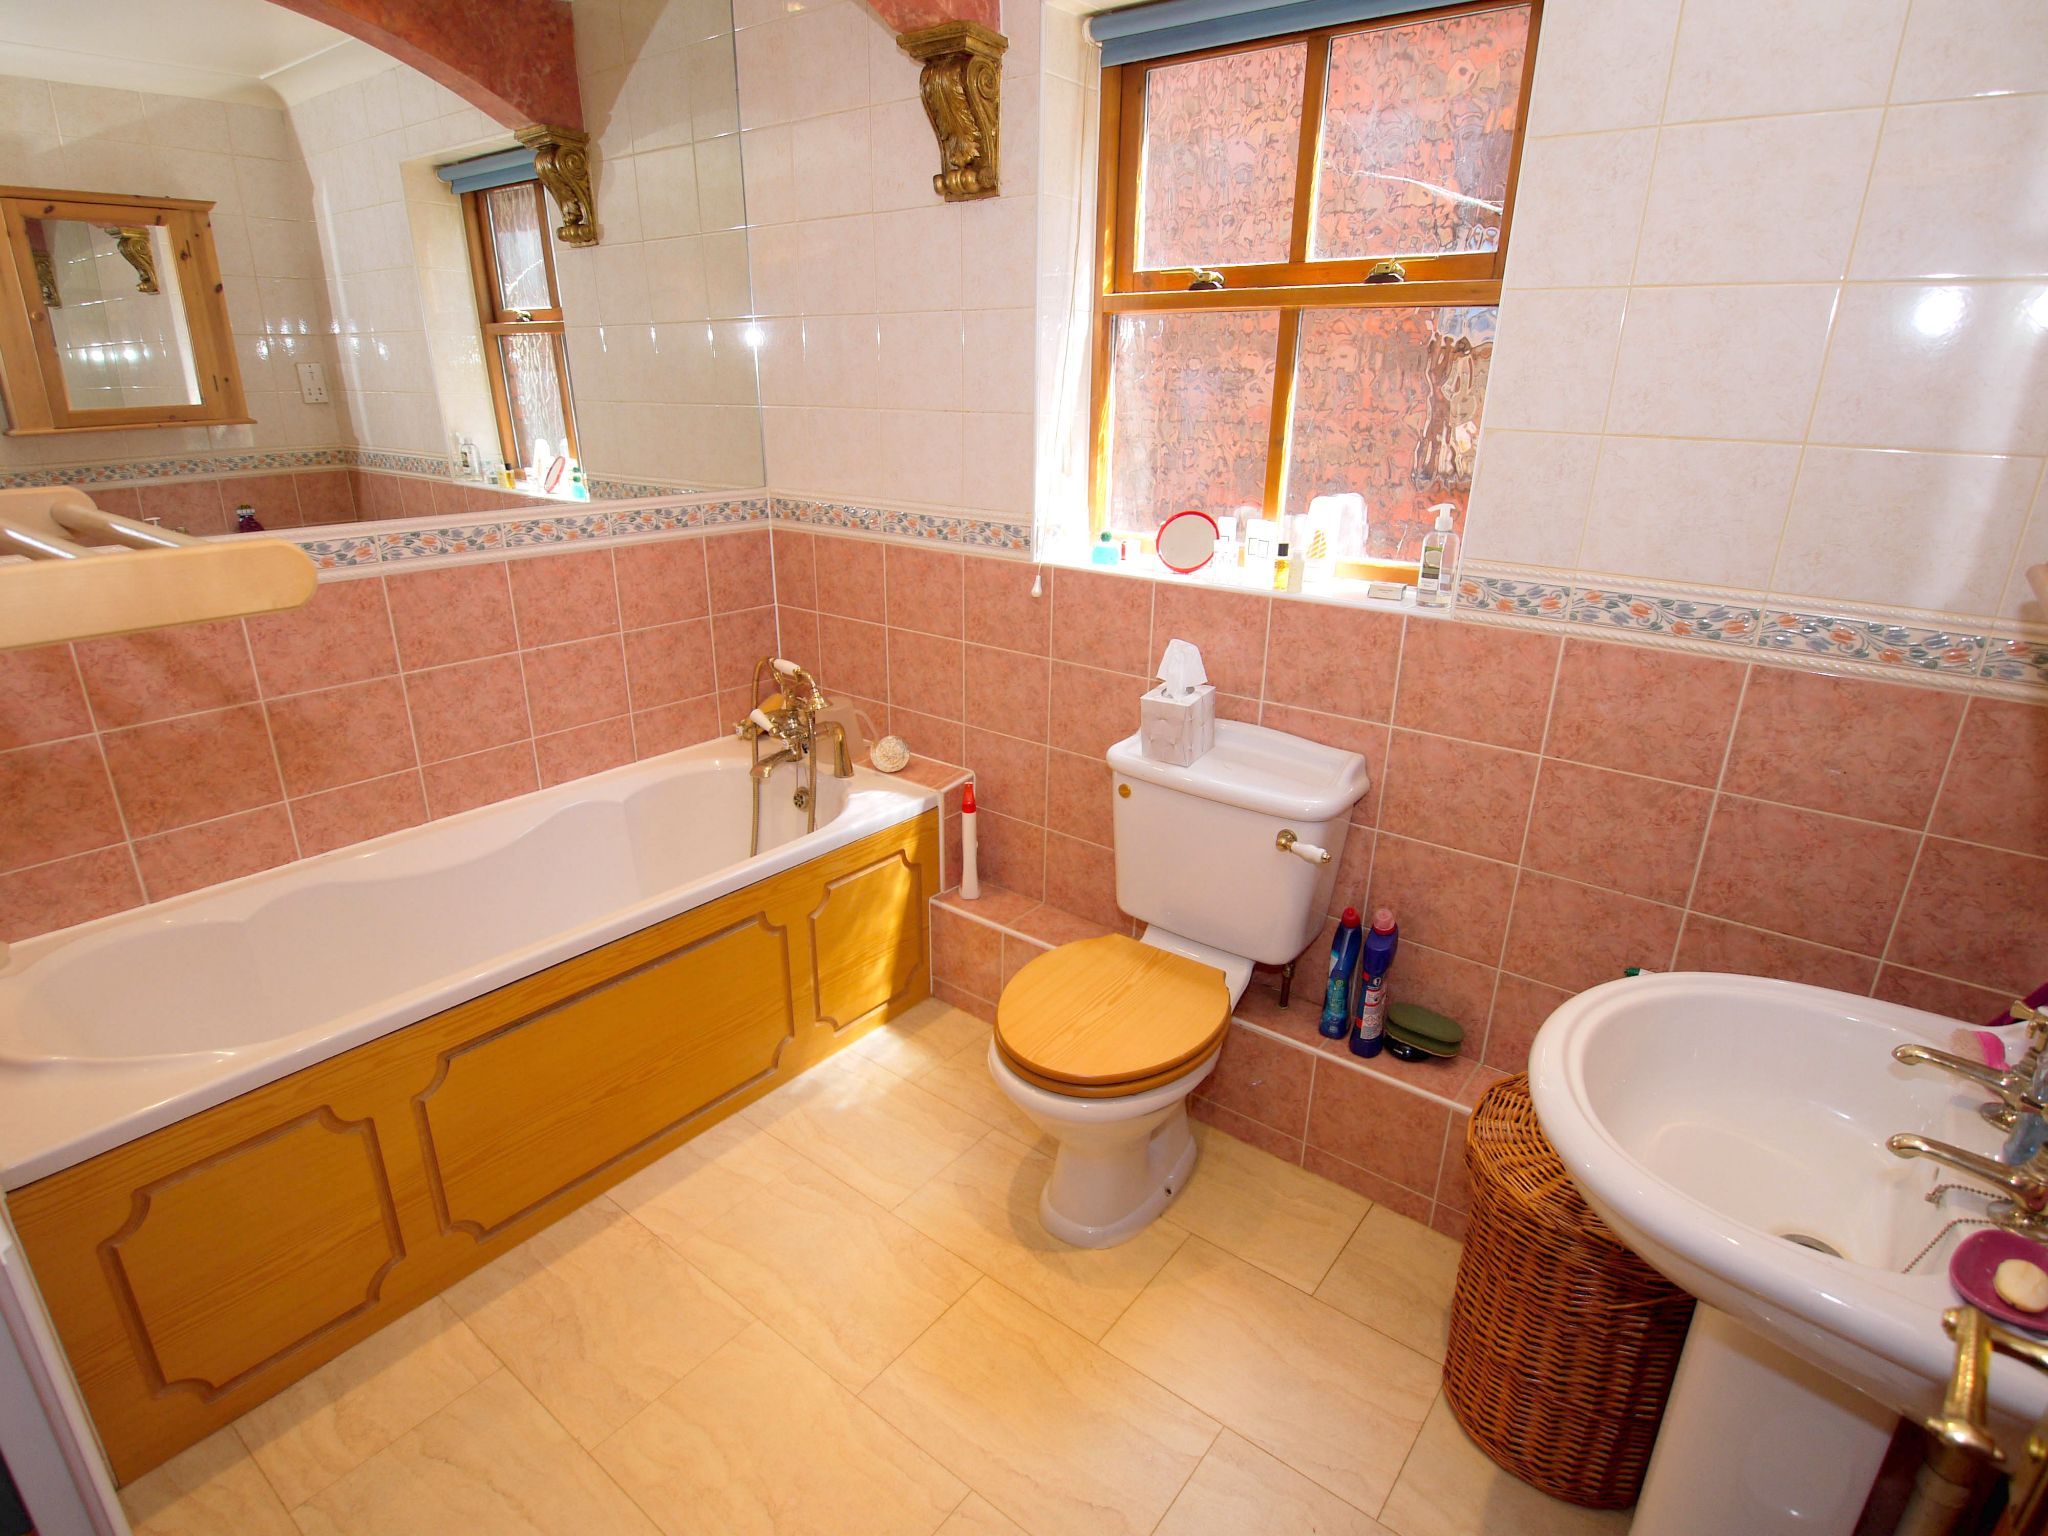 5 bedroom detached house For Sale in Tonbridge - Photograph 8